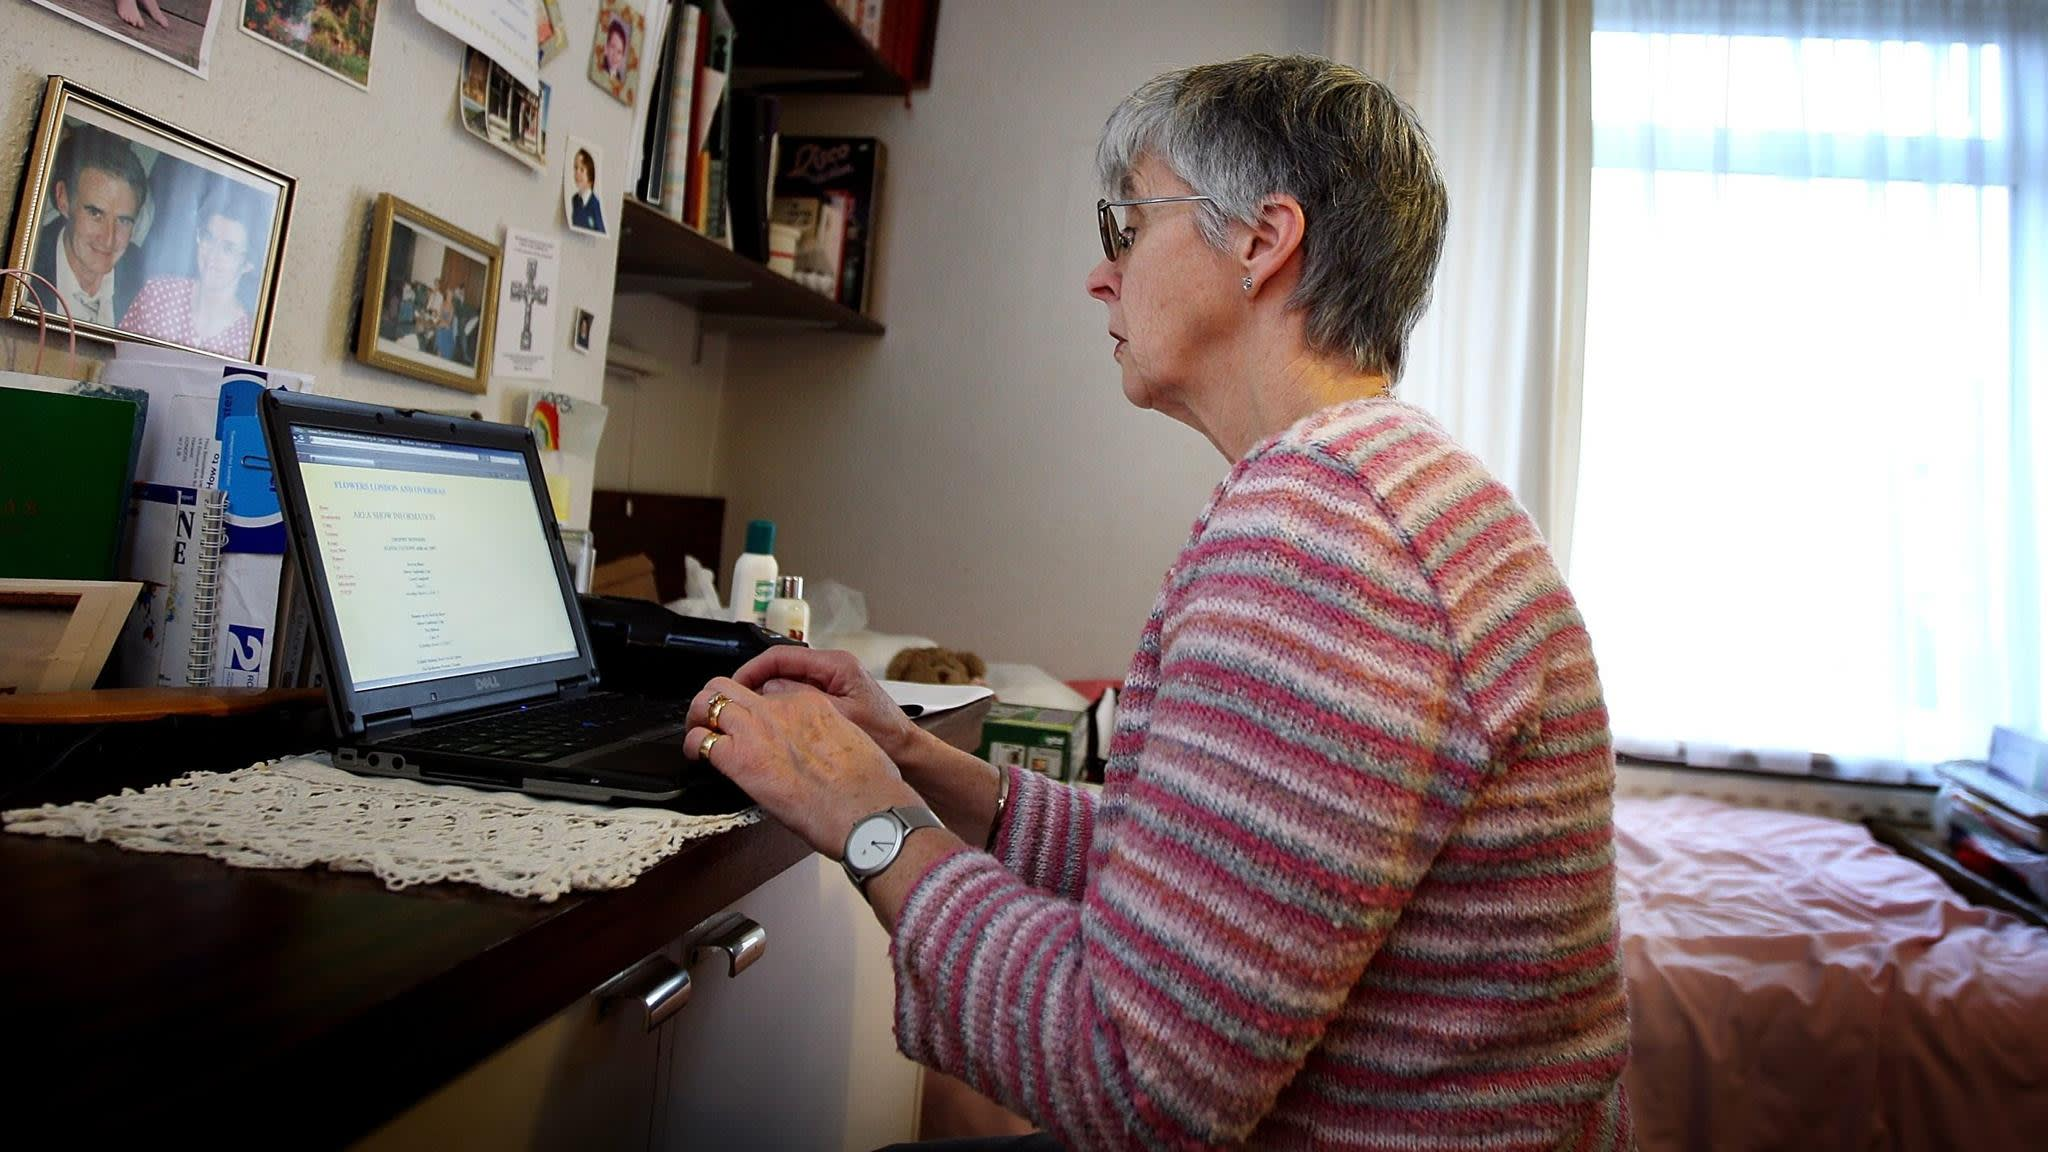 The Silver Economy: Hurdles remain for boomers yet to get online | Financial Times